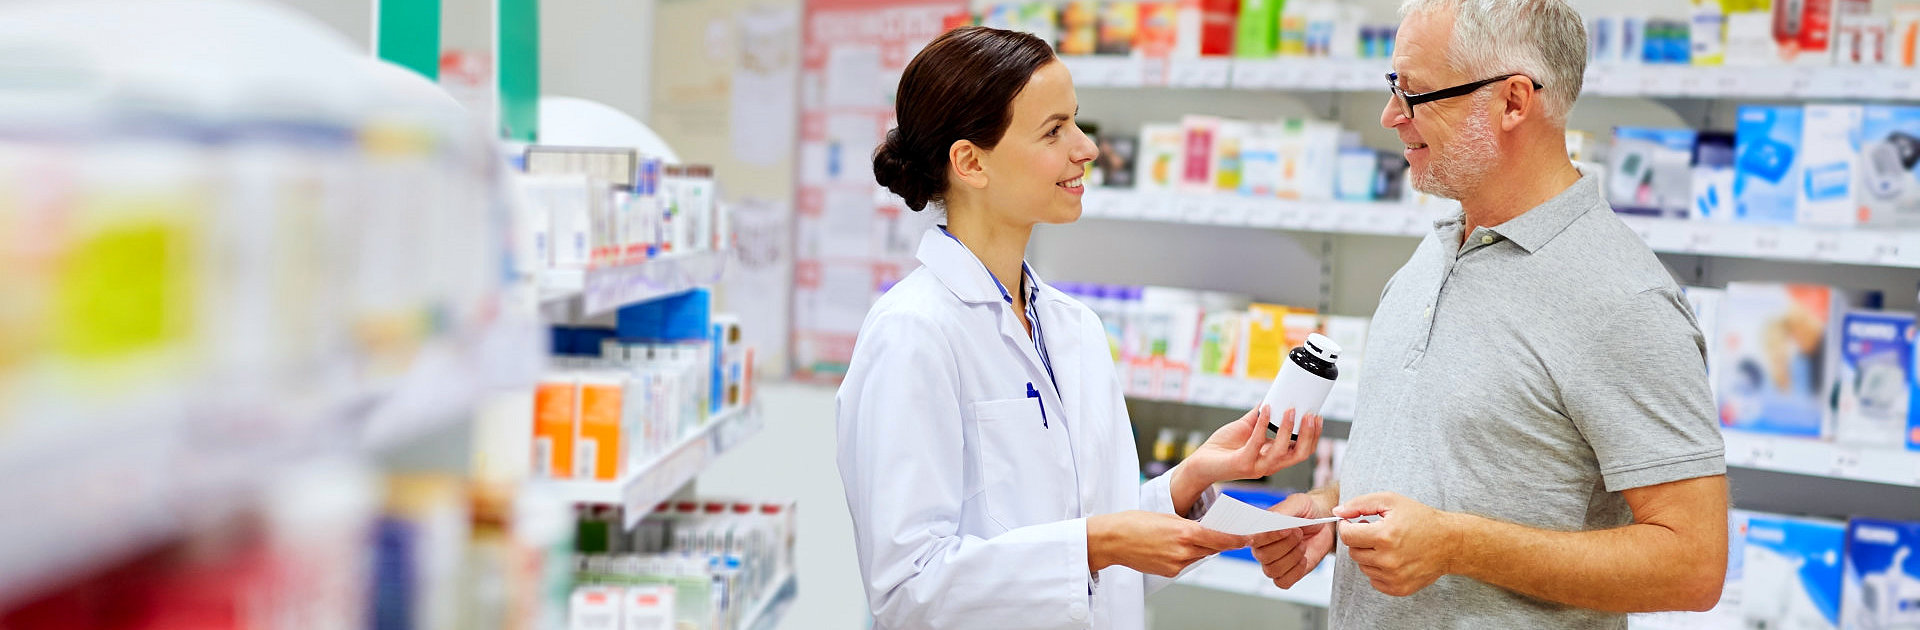 pharmacist and a customer smiling